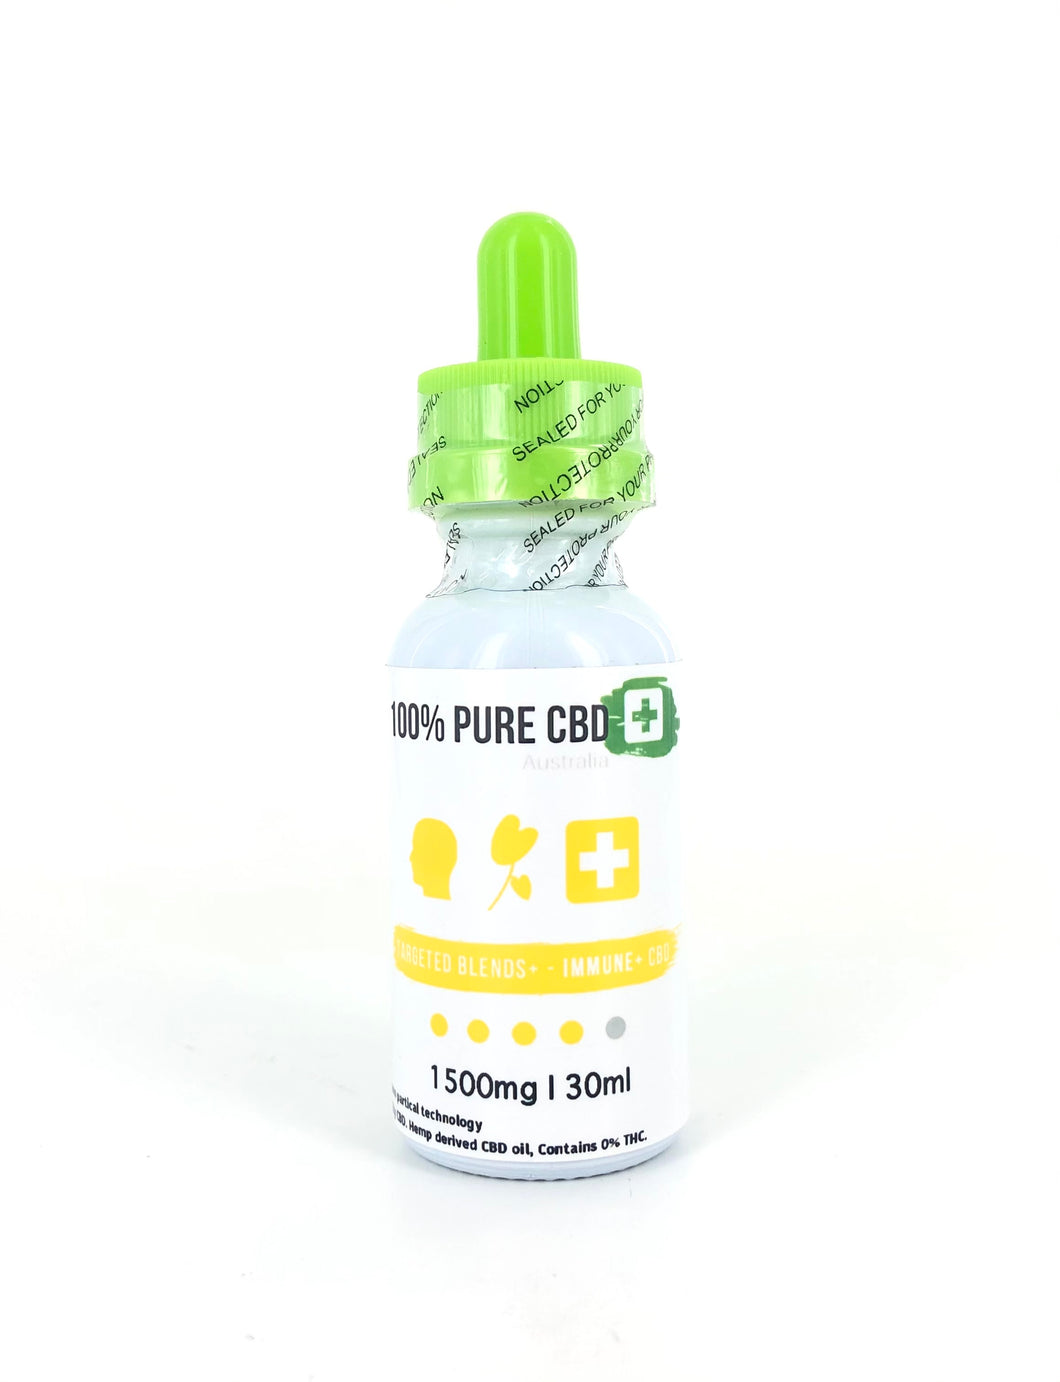 Immune - Targeted CBD Blends+ - 100% Pure CBD